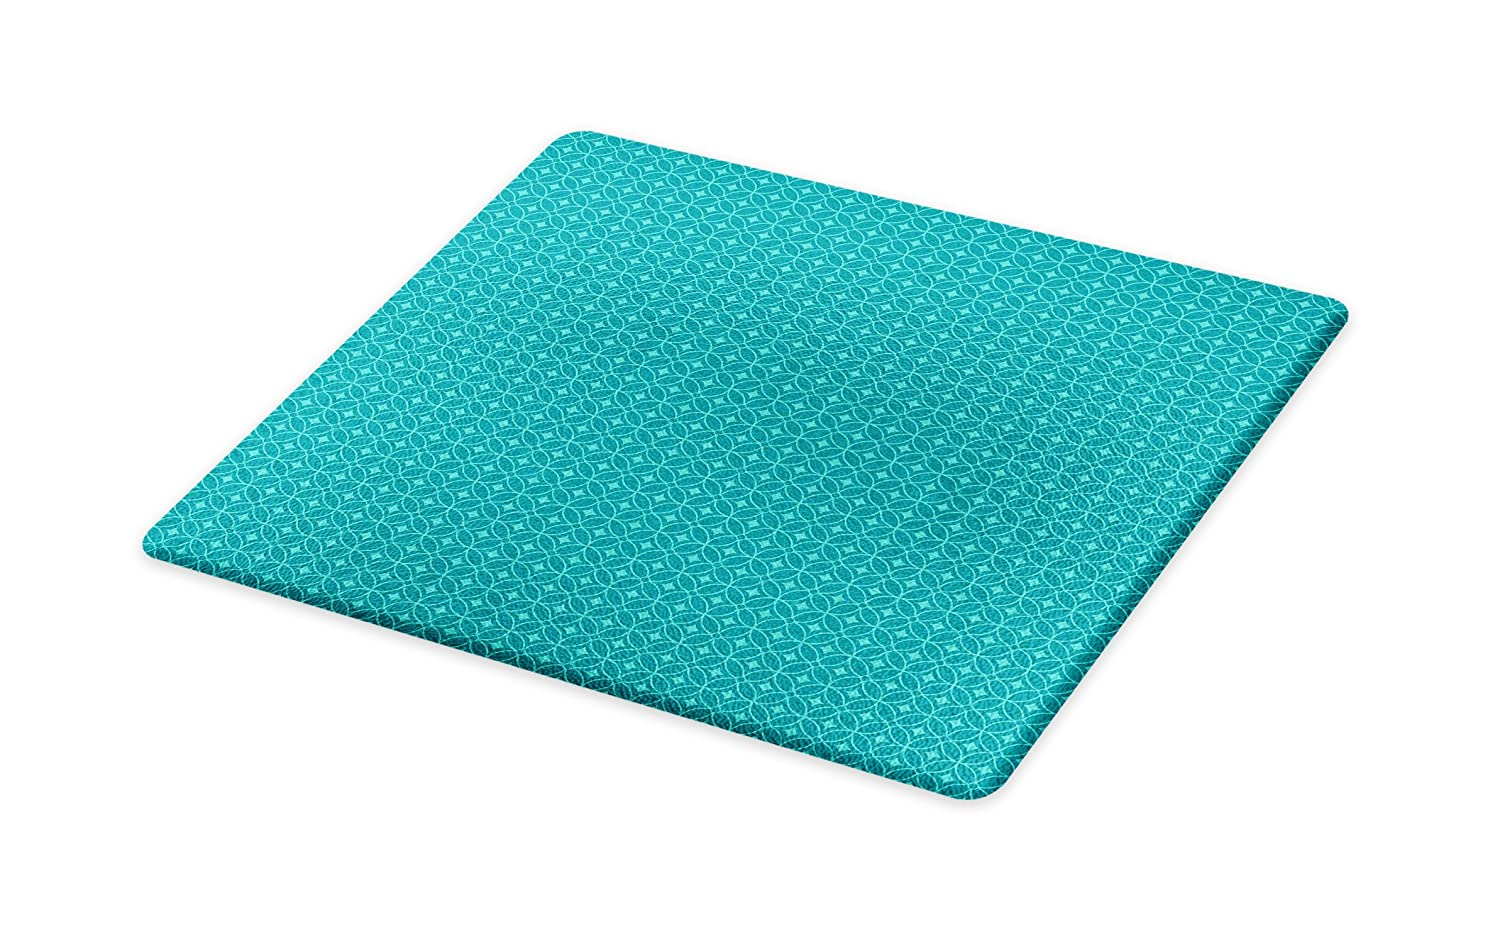 Lunarable Geometric Cutting Board, Traditional Rhombuses and Intertwined Circles Pattern Classic Art Design, Decorative Tempered Glass Cutting and Serving Board, Large Size, Teal and Turquoise